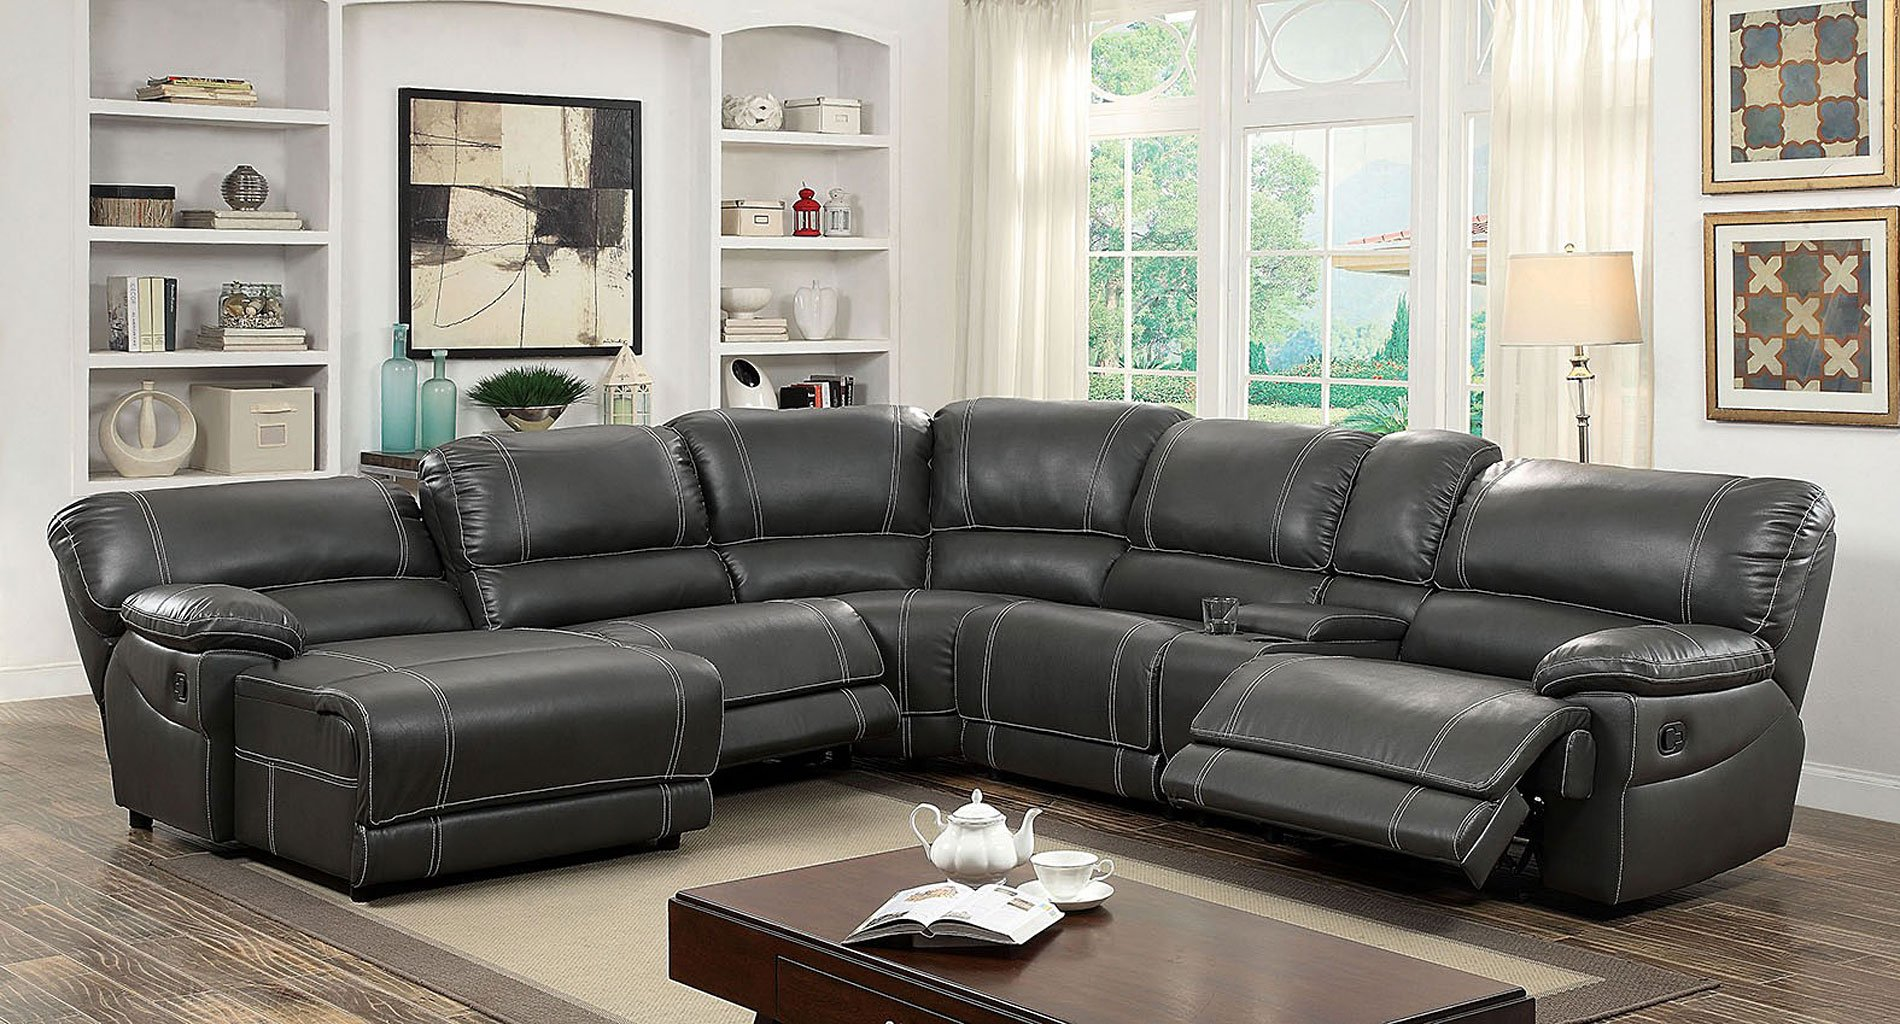 Estrella Reclining Sectional Gray By Furniture Of